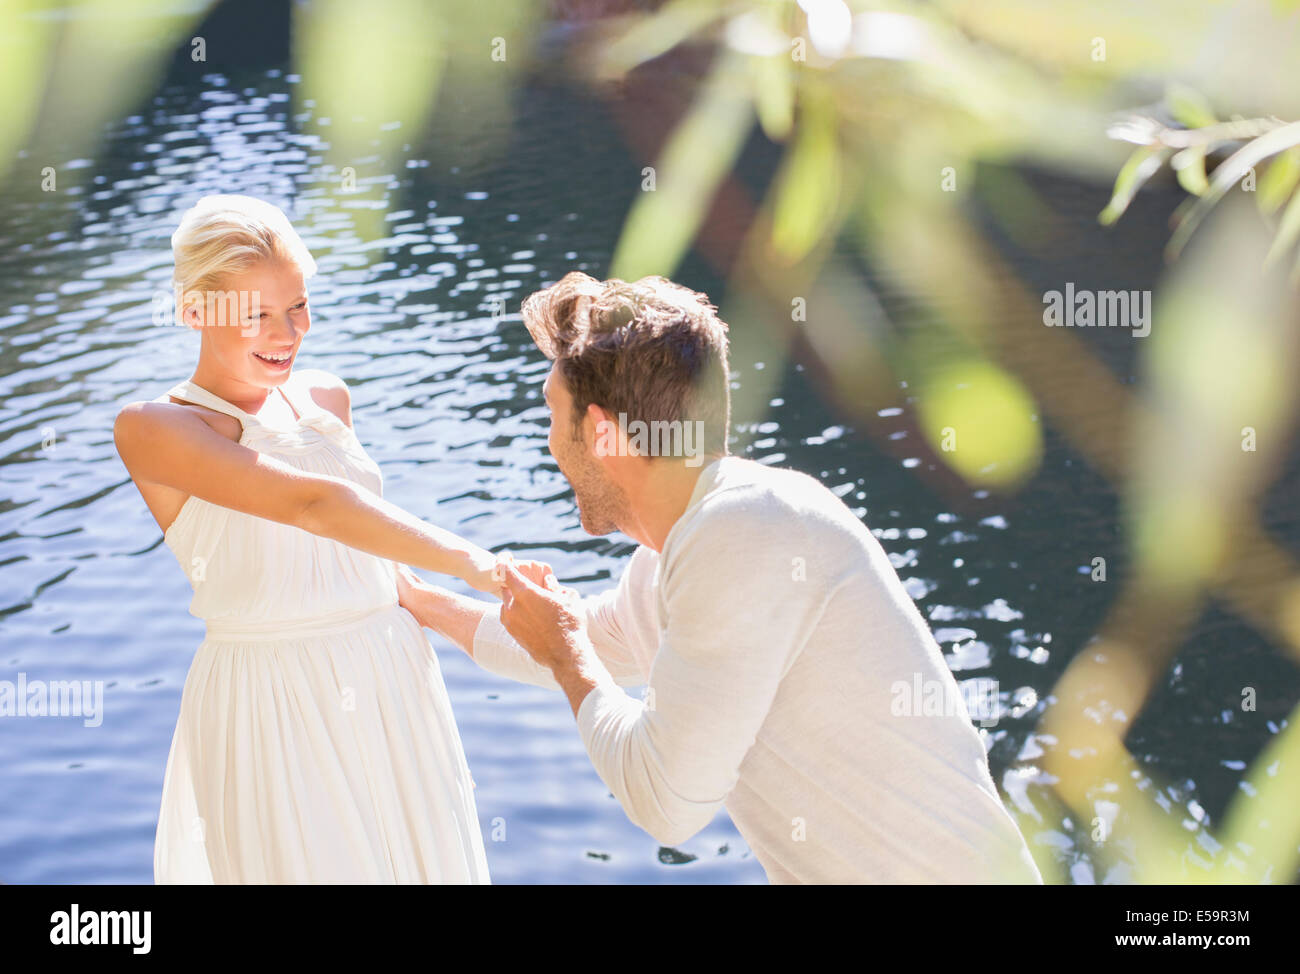 Couple playing by pool Photo Stock